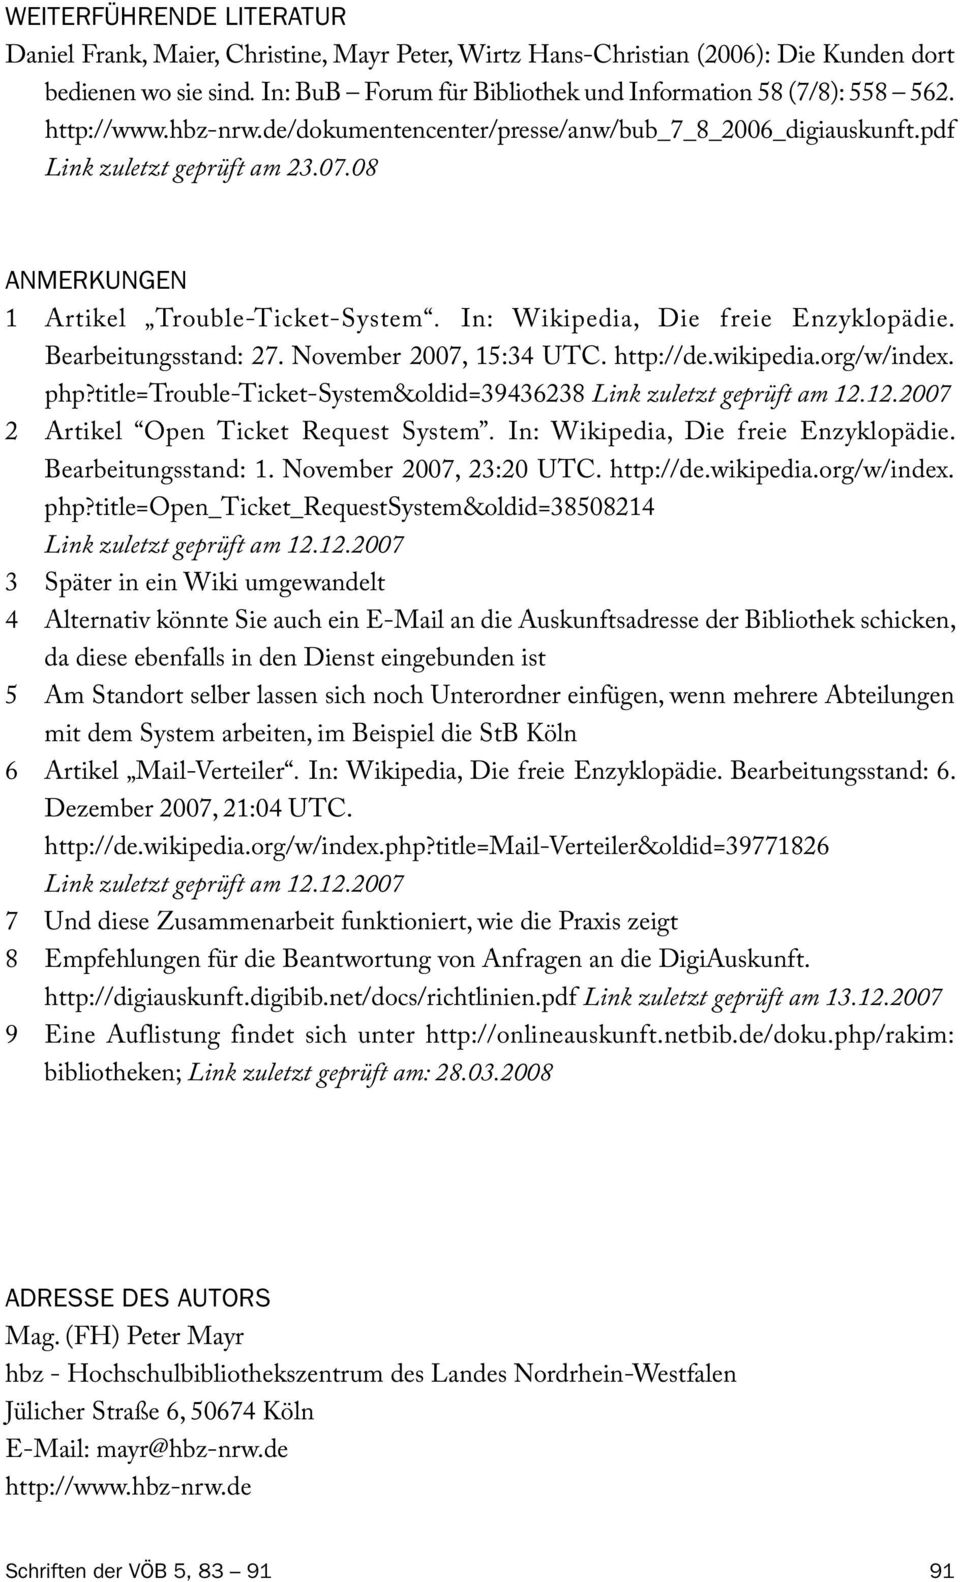 Bearbeitungsstand: 27. November 2007, 15:34 UTC. http://de.wikipedia.org/w/index. php?title=trouble-ticket-system&oldid=39436238 Link zuletzt geprüft am 12.12.2007 2 Artikel Open Ticket Request System.